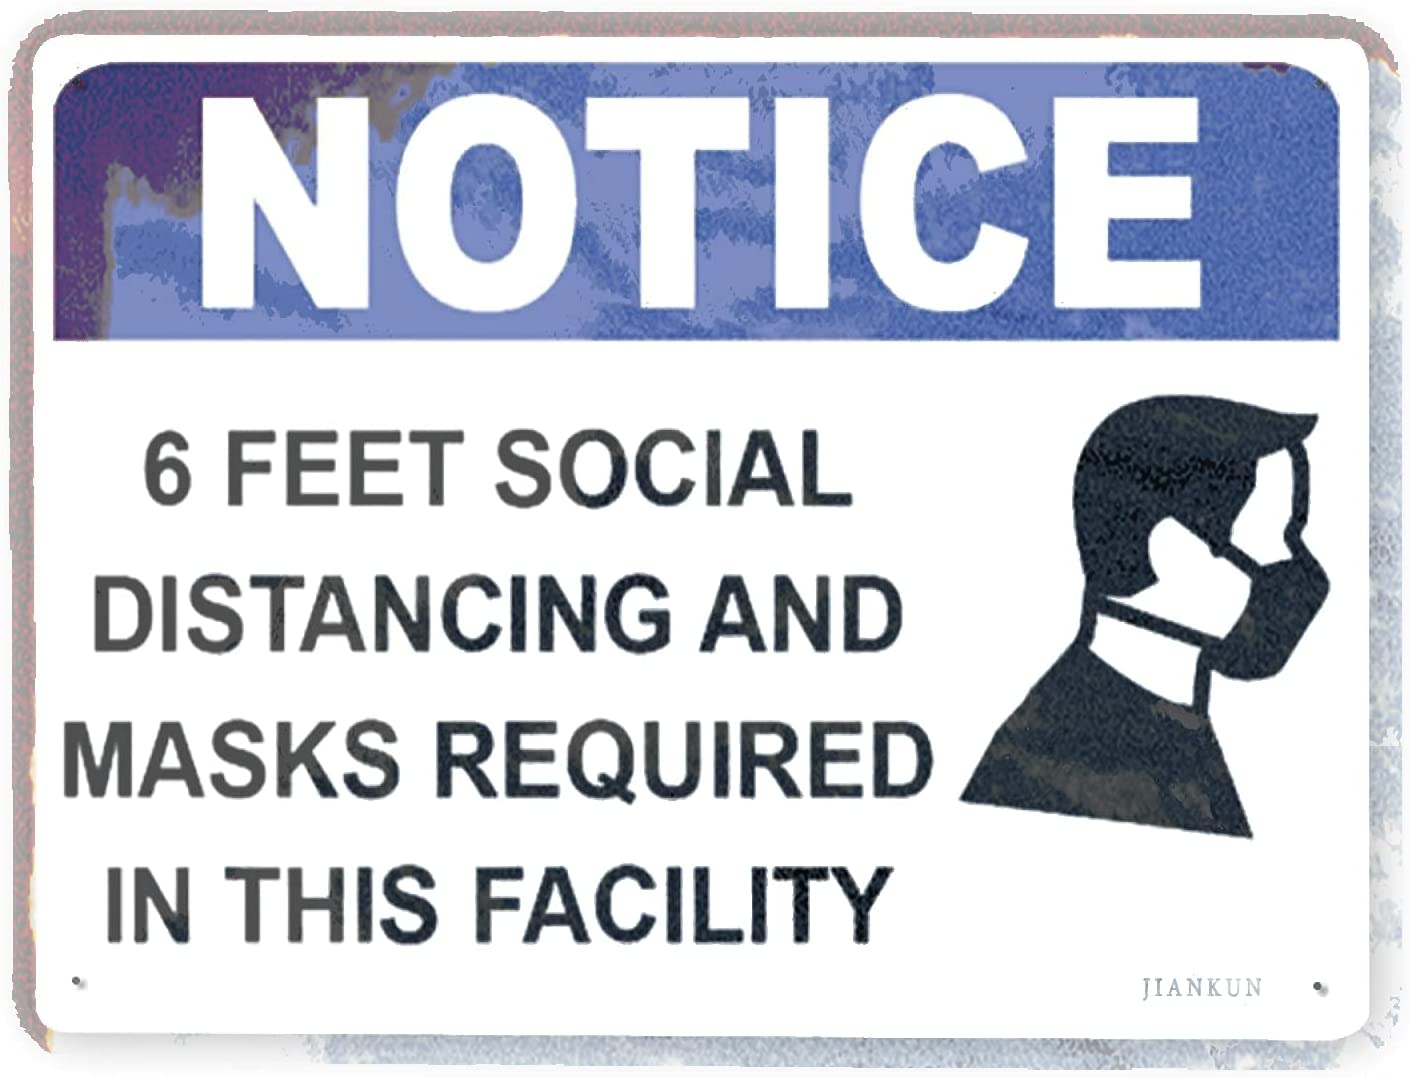 J.DXHYA Man Cave Decor Indefinitely 2 Pieces Warning Sign Rules Feet Max 66% OFF S 6